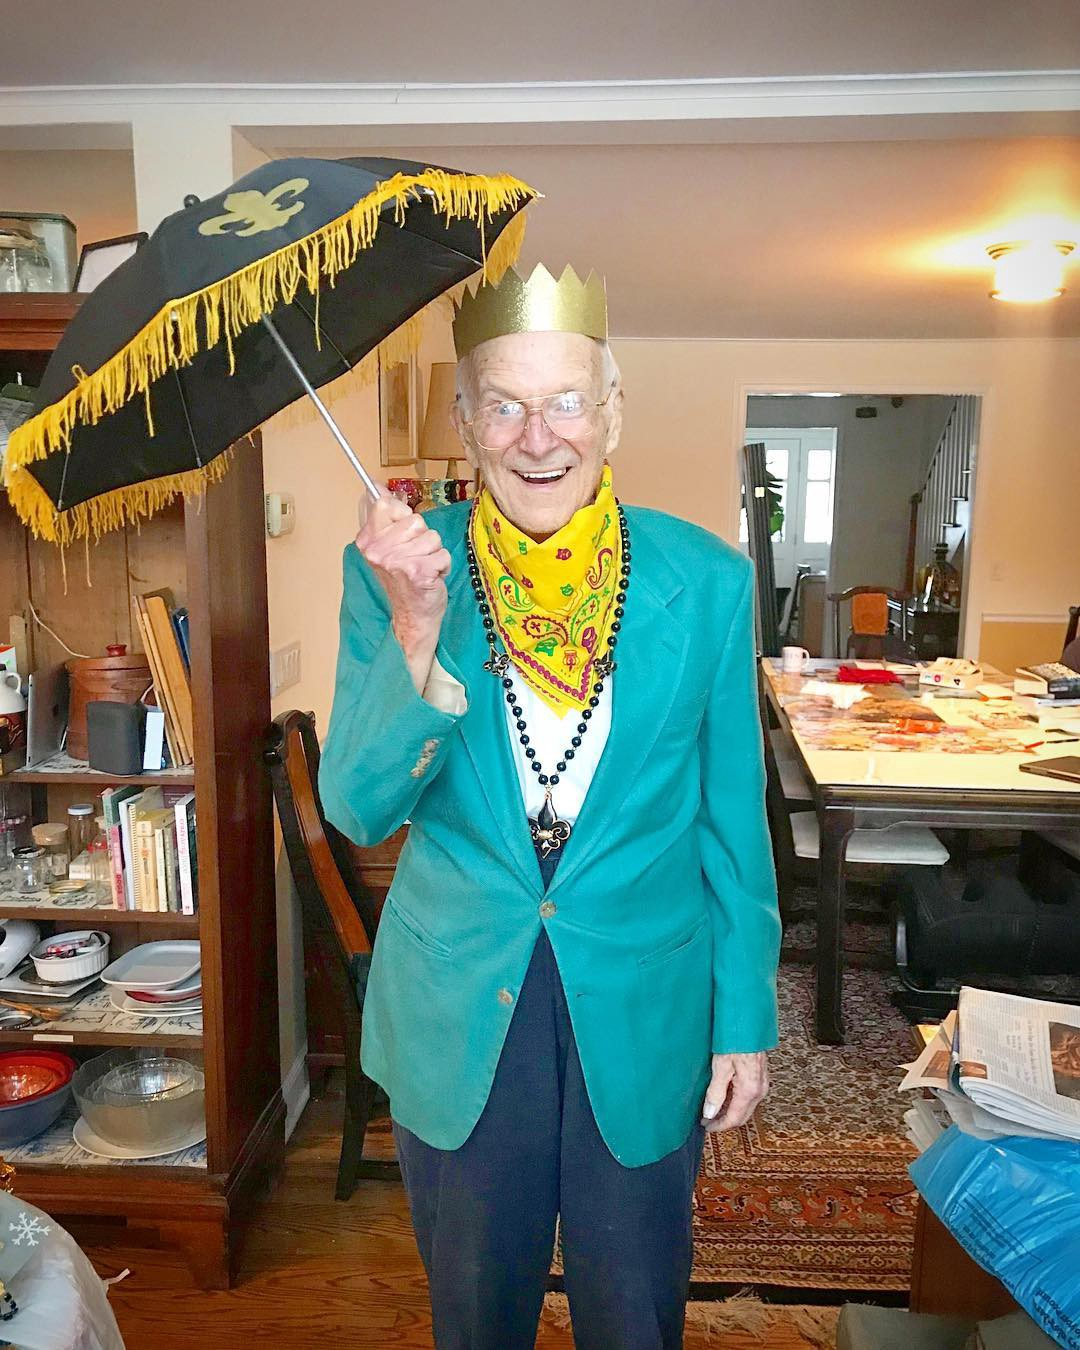 Photograph of Alfred holding a tasseled fleur-de-lis umbrella, wearing a crown, beads, a bandana, and a bright green blazer.